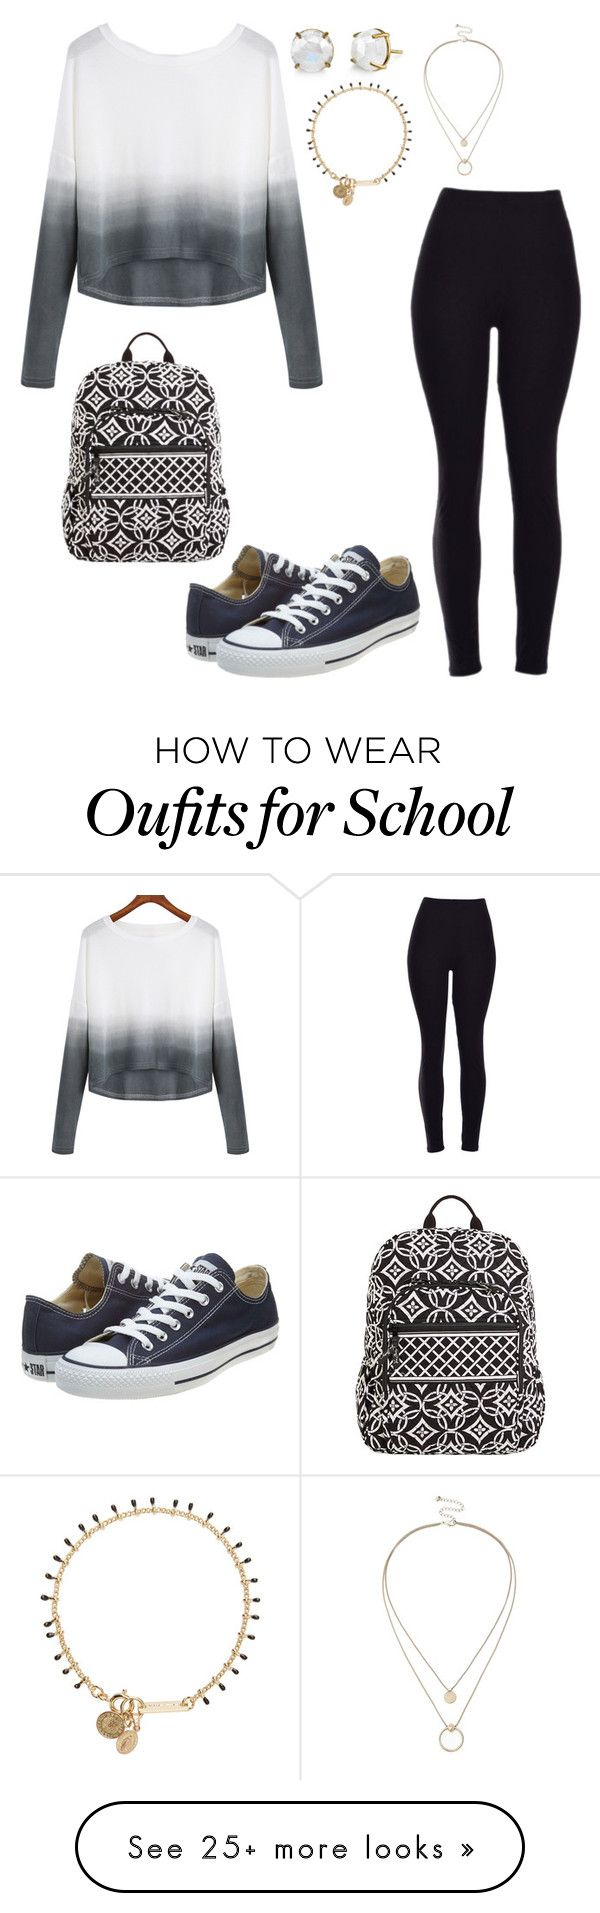 """School day:Wednesday"" by sweet-brownsuga on Polyvore featuring Converse, Sole Society, Isabel Marant, Vera Bradley, women's clothing, women, female, woman, misses and juniors"